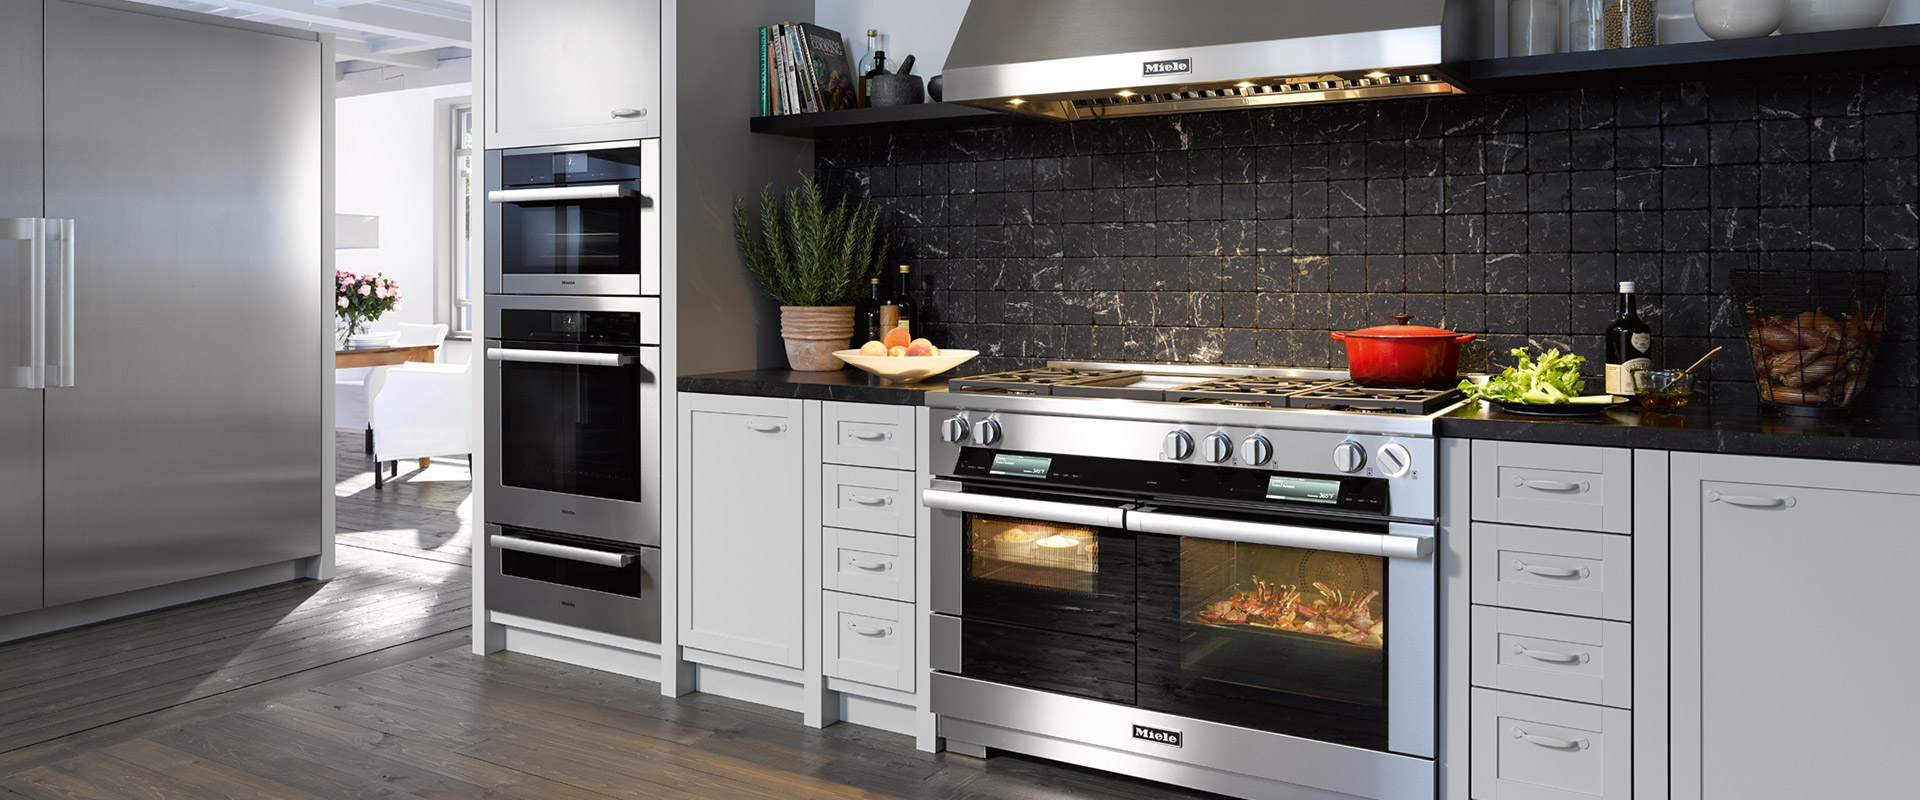 Discount Kitchen Cabinets San Diego Call 858 Appliance San Diego 39s Best Appliance Repair Service